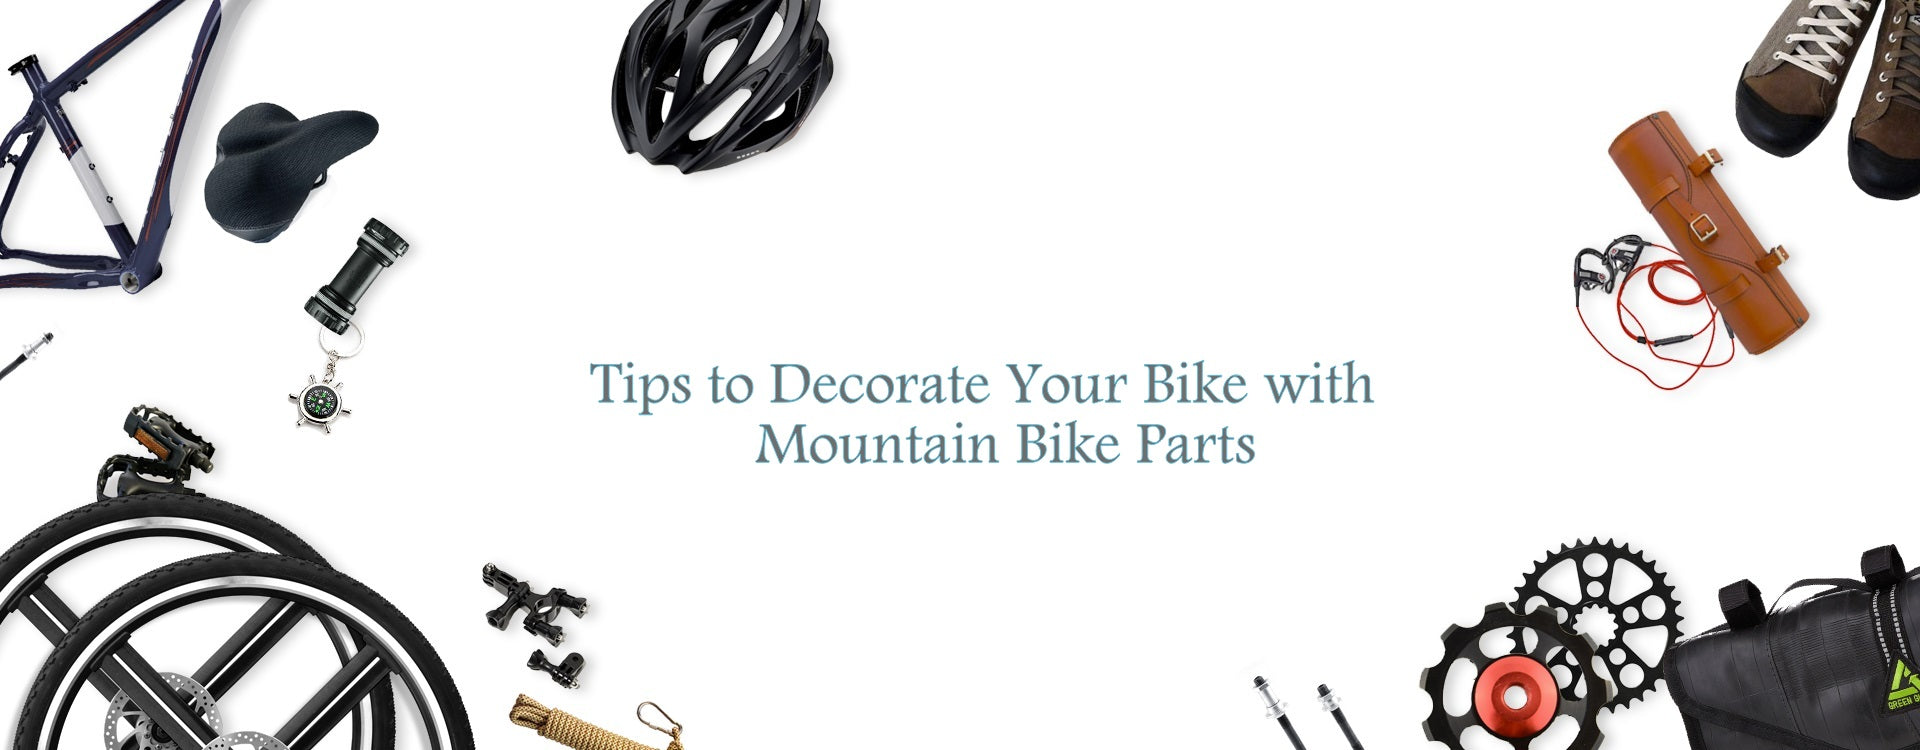 Tips to decorate your bike with mountain bike parts in Singapore